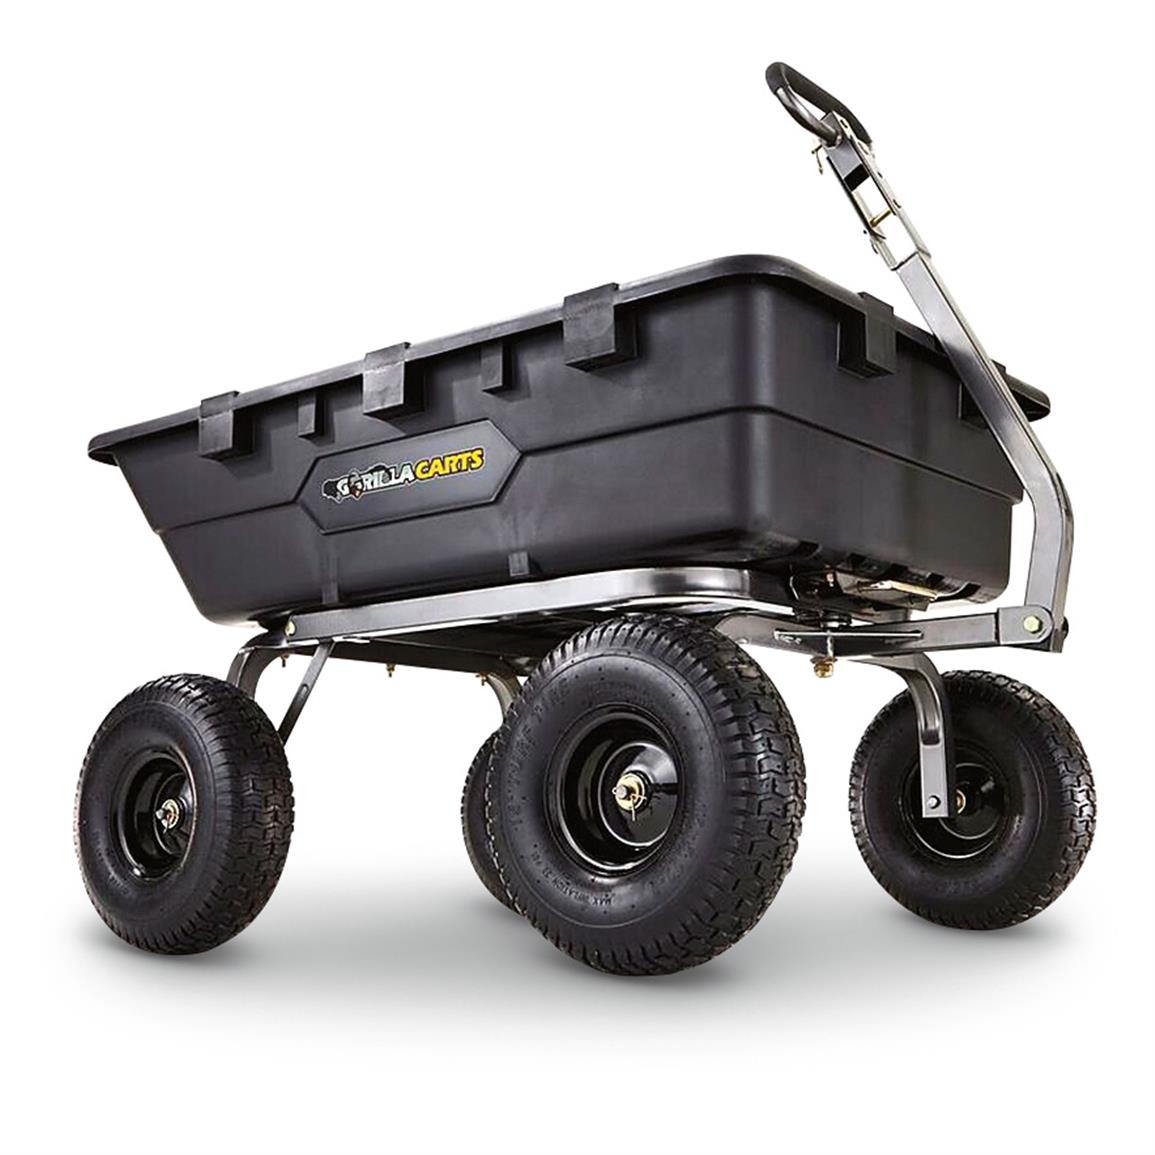 Gorilla Carts Poly Garden Cart, 1,500 Pound Capacity